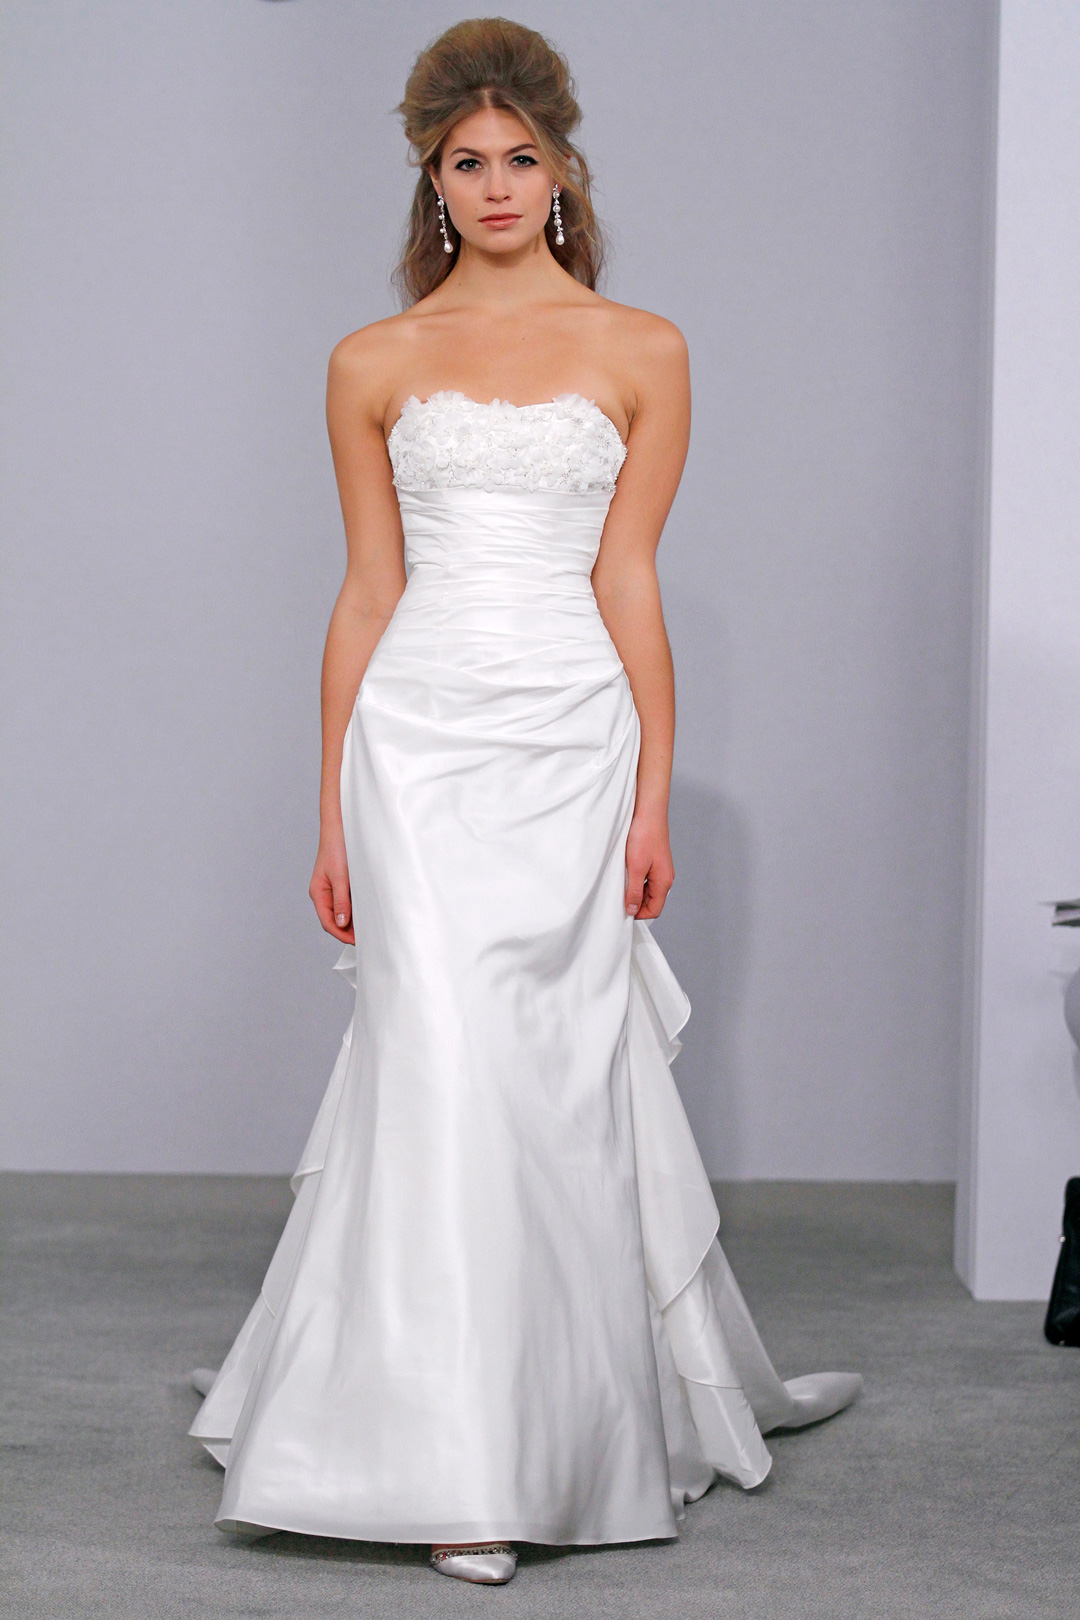 Petite wedding dress tips for our lovely petite girls for Wedding dress ideas for short brides